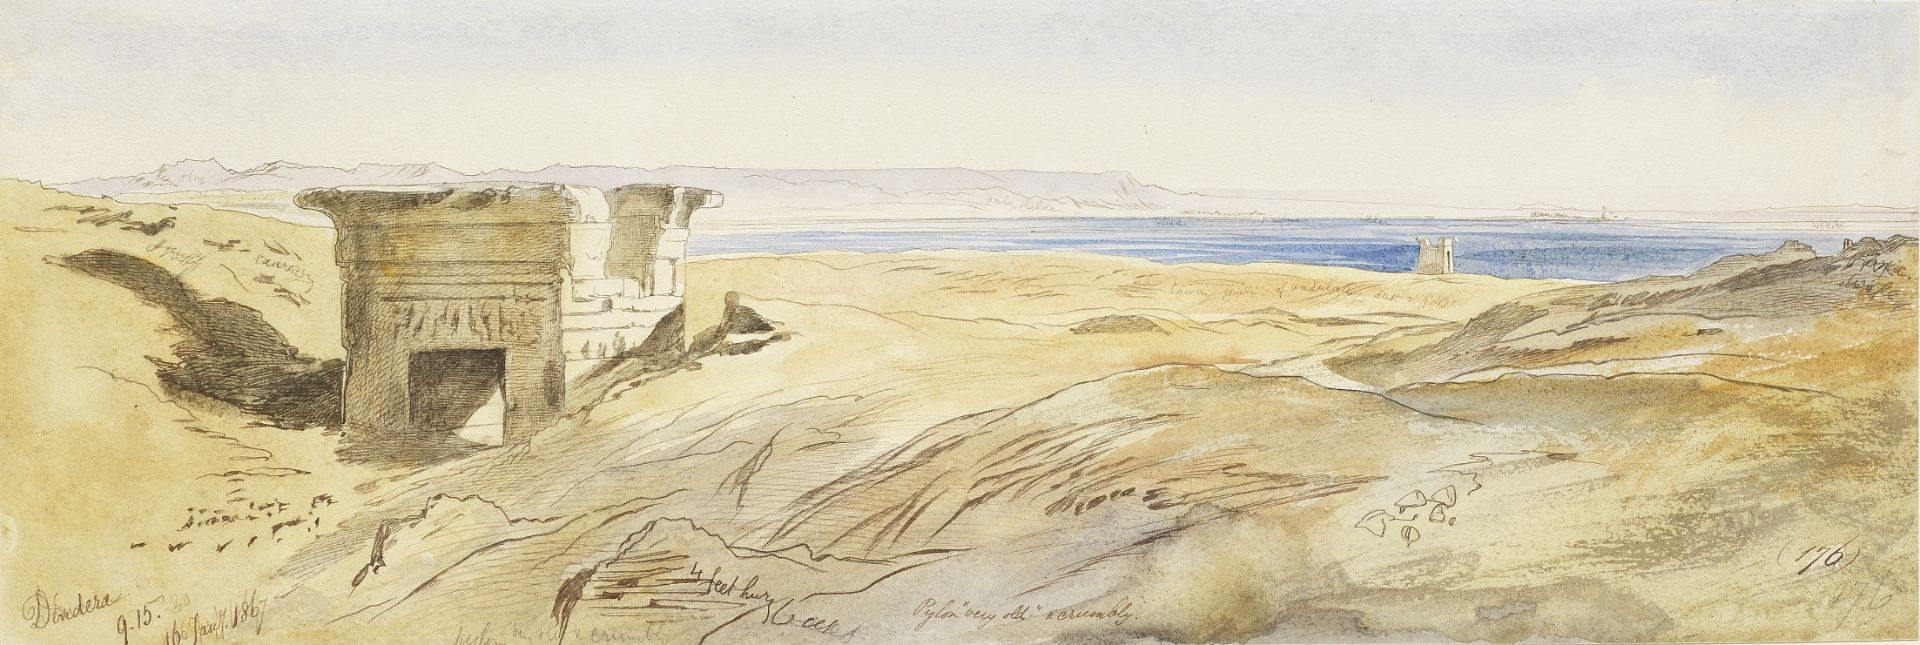 Edward Lear (British, 1812-1888) Dendera, with a view of the Nile